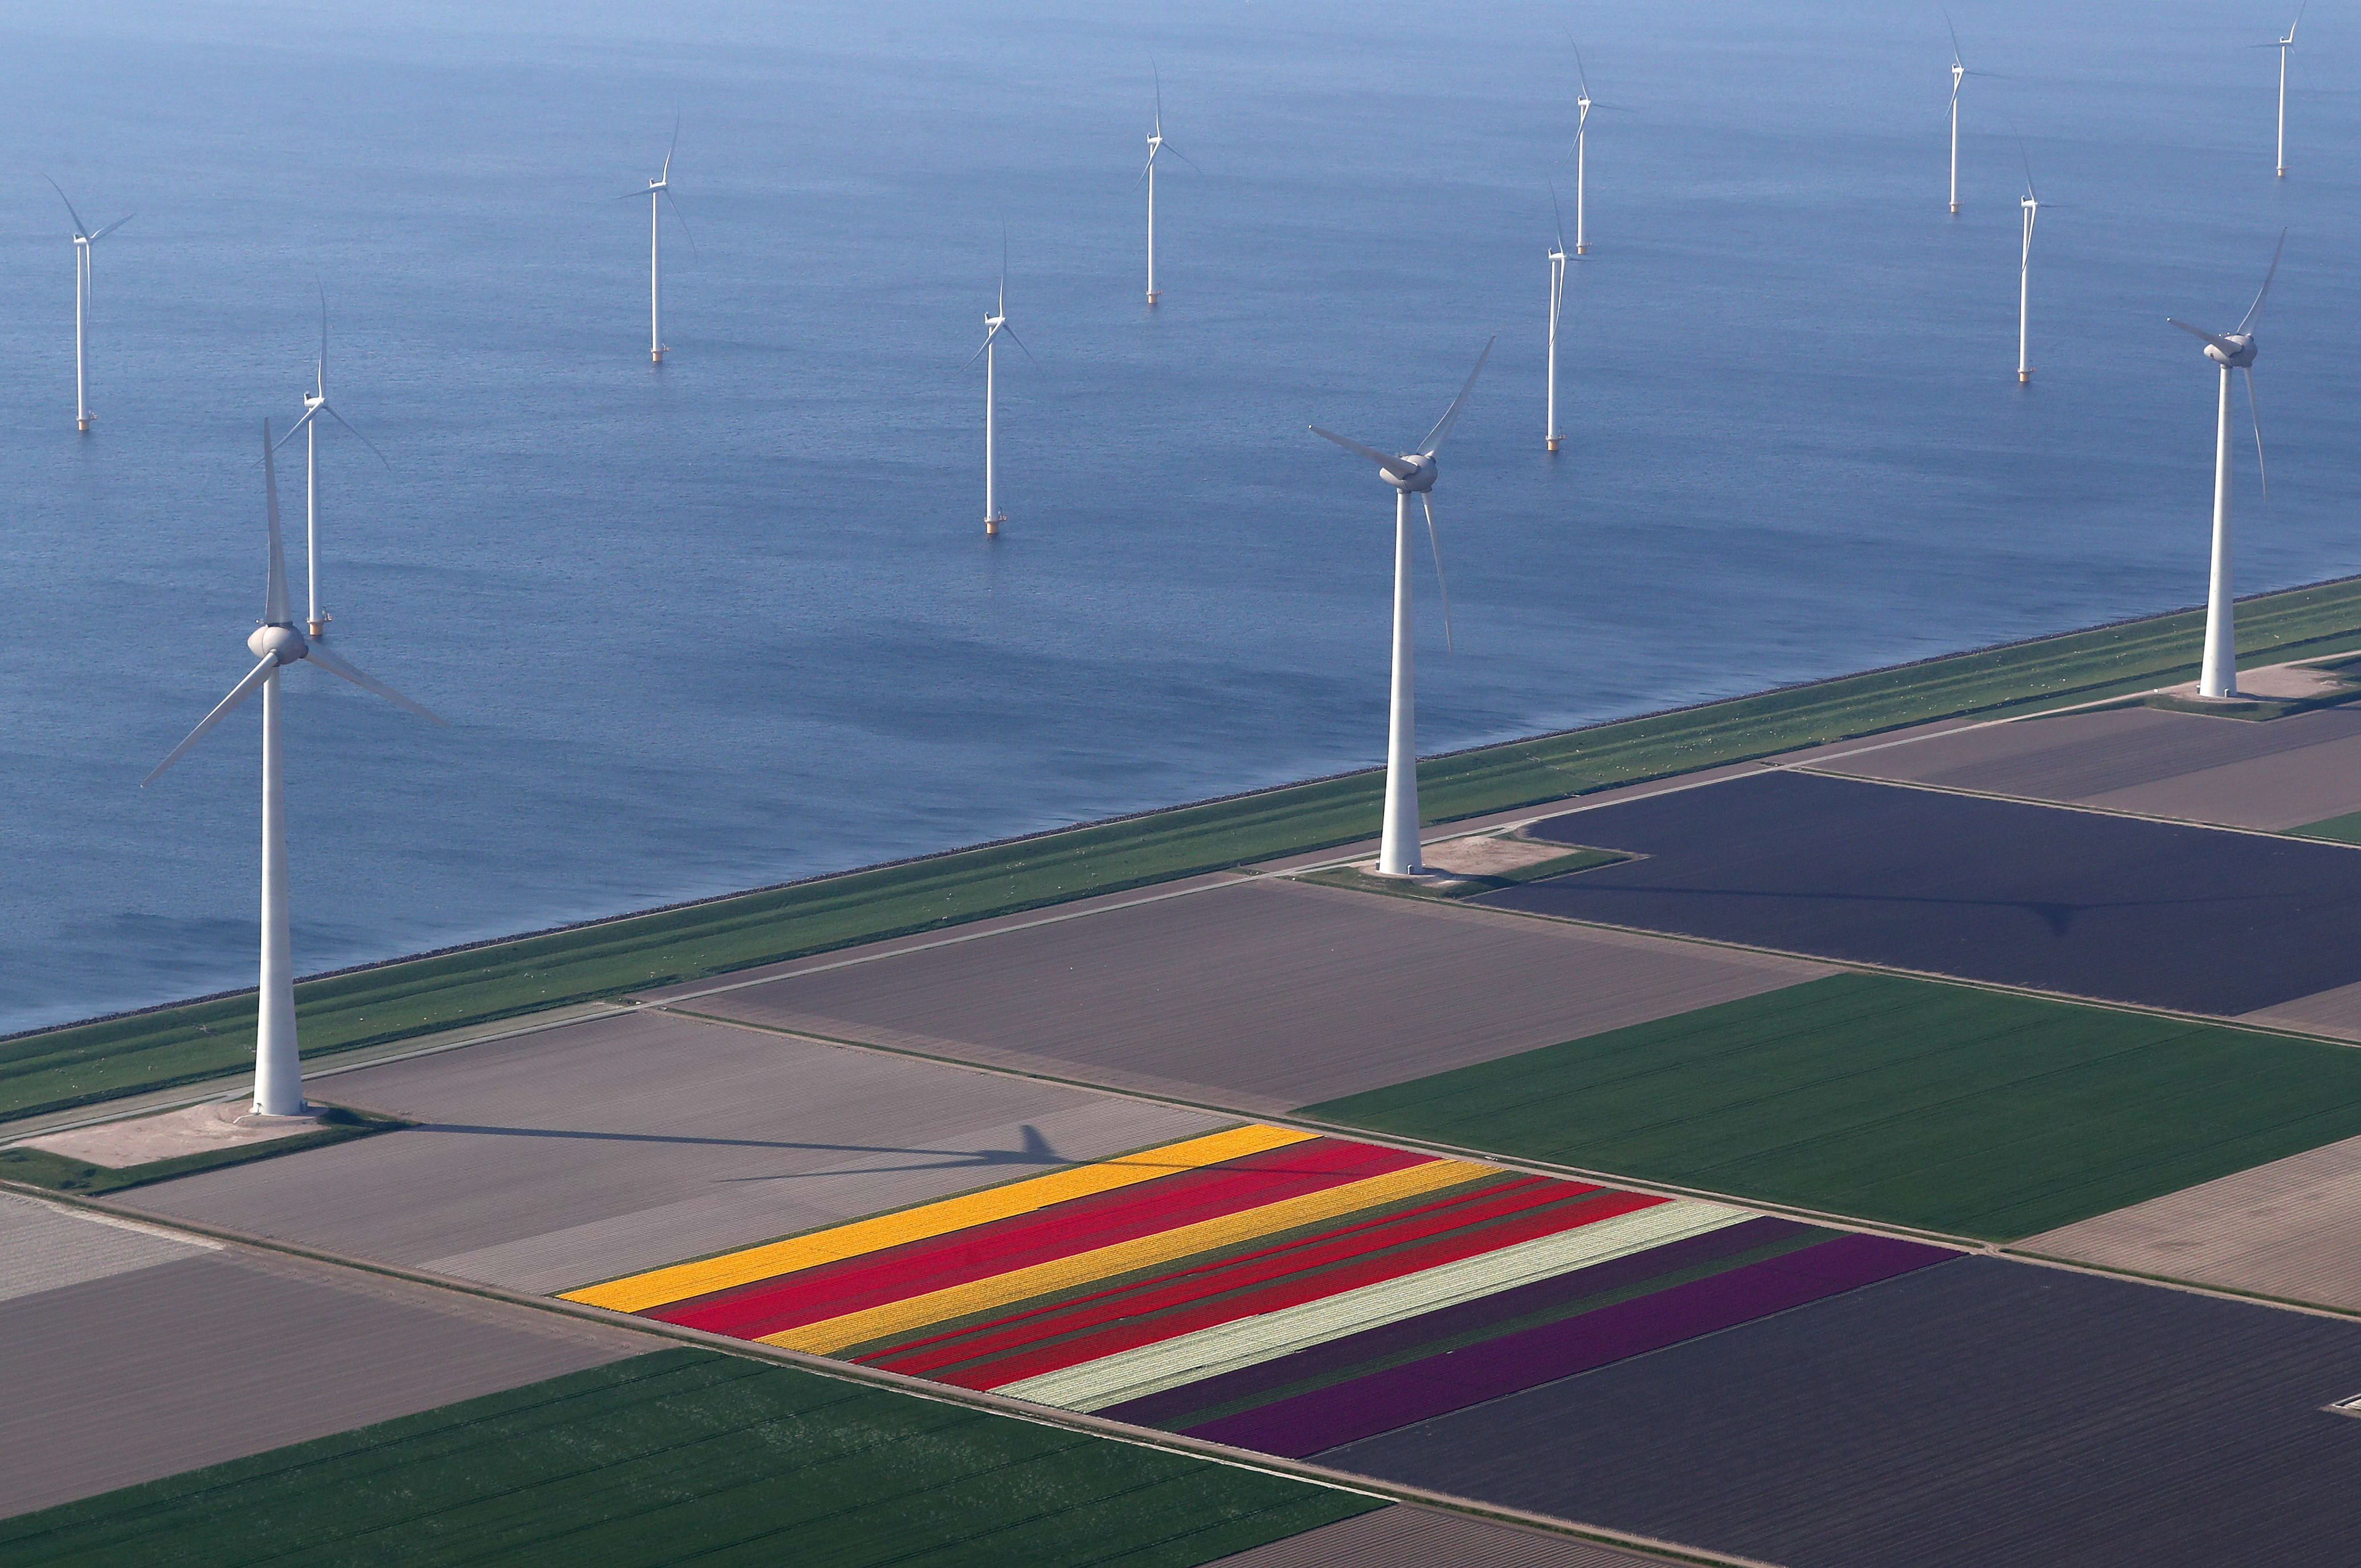 An aerial view wind turbines of tulip fields near the city of Creil, Netherlands